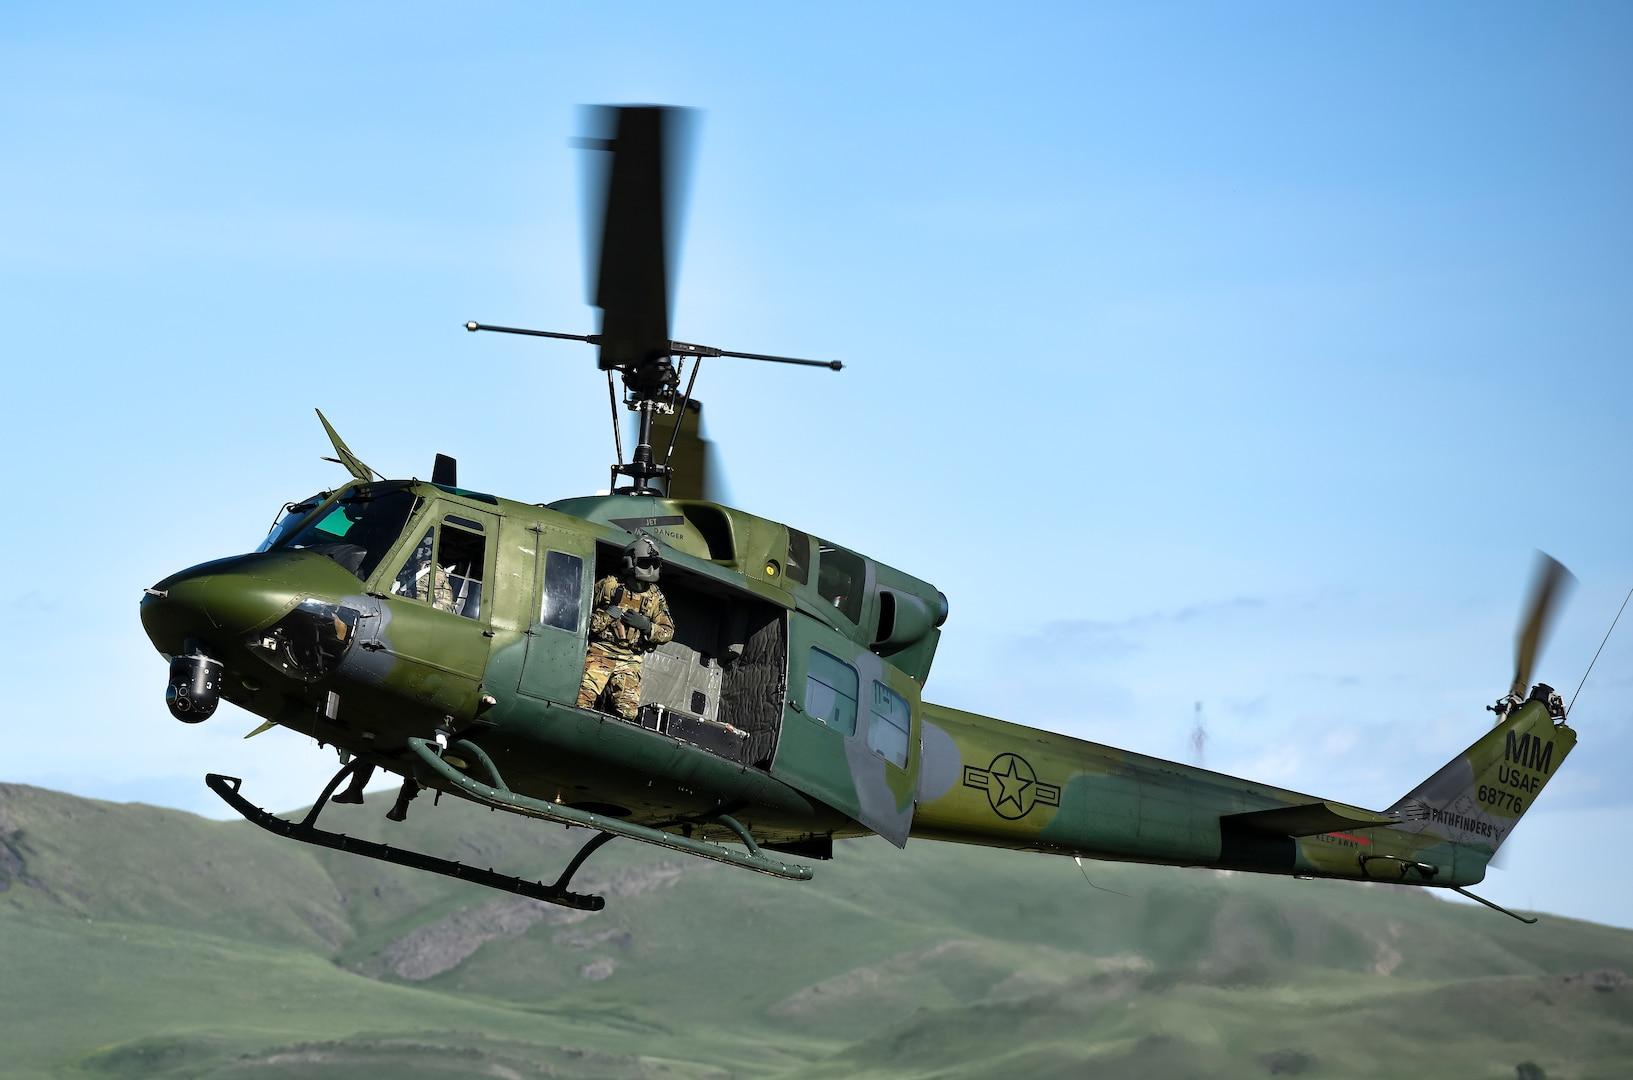 A UH-1N helicopter with the 40th Helicopter Squadron prepare to land during an integrated recapture and recovery exercise June 11, 2019, at an intercontinental ballistic missile launch facility near Simms, Mont.